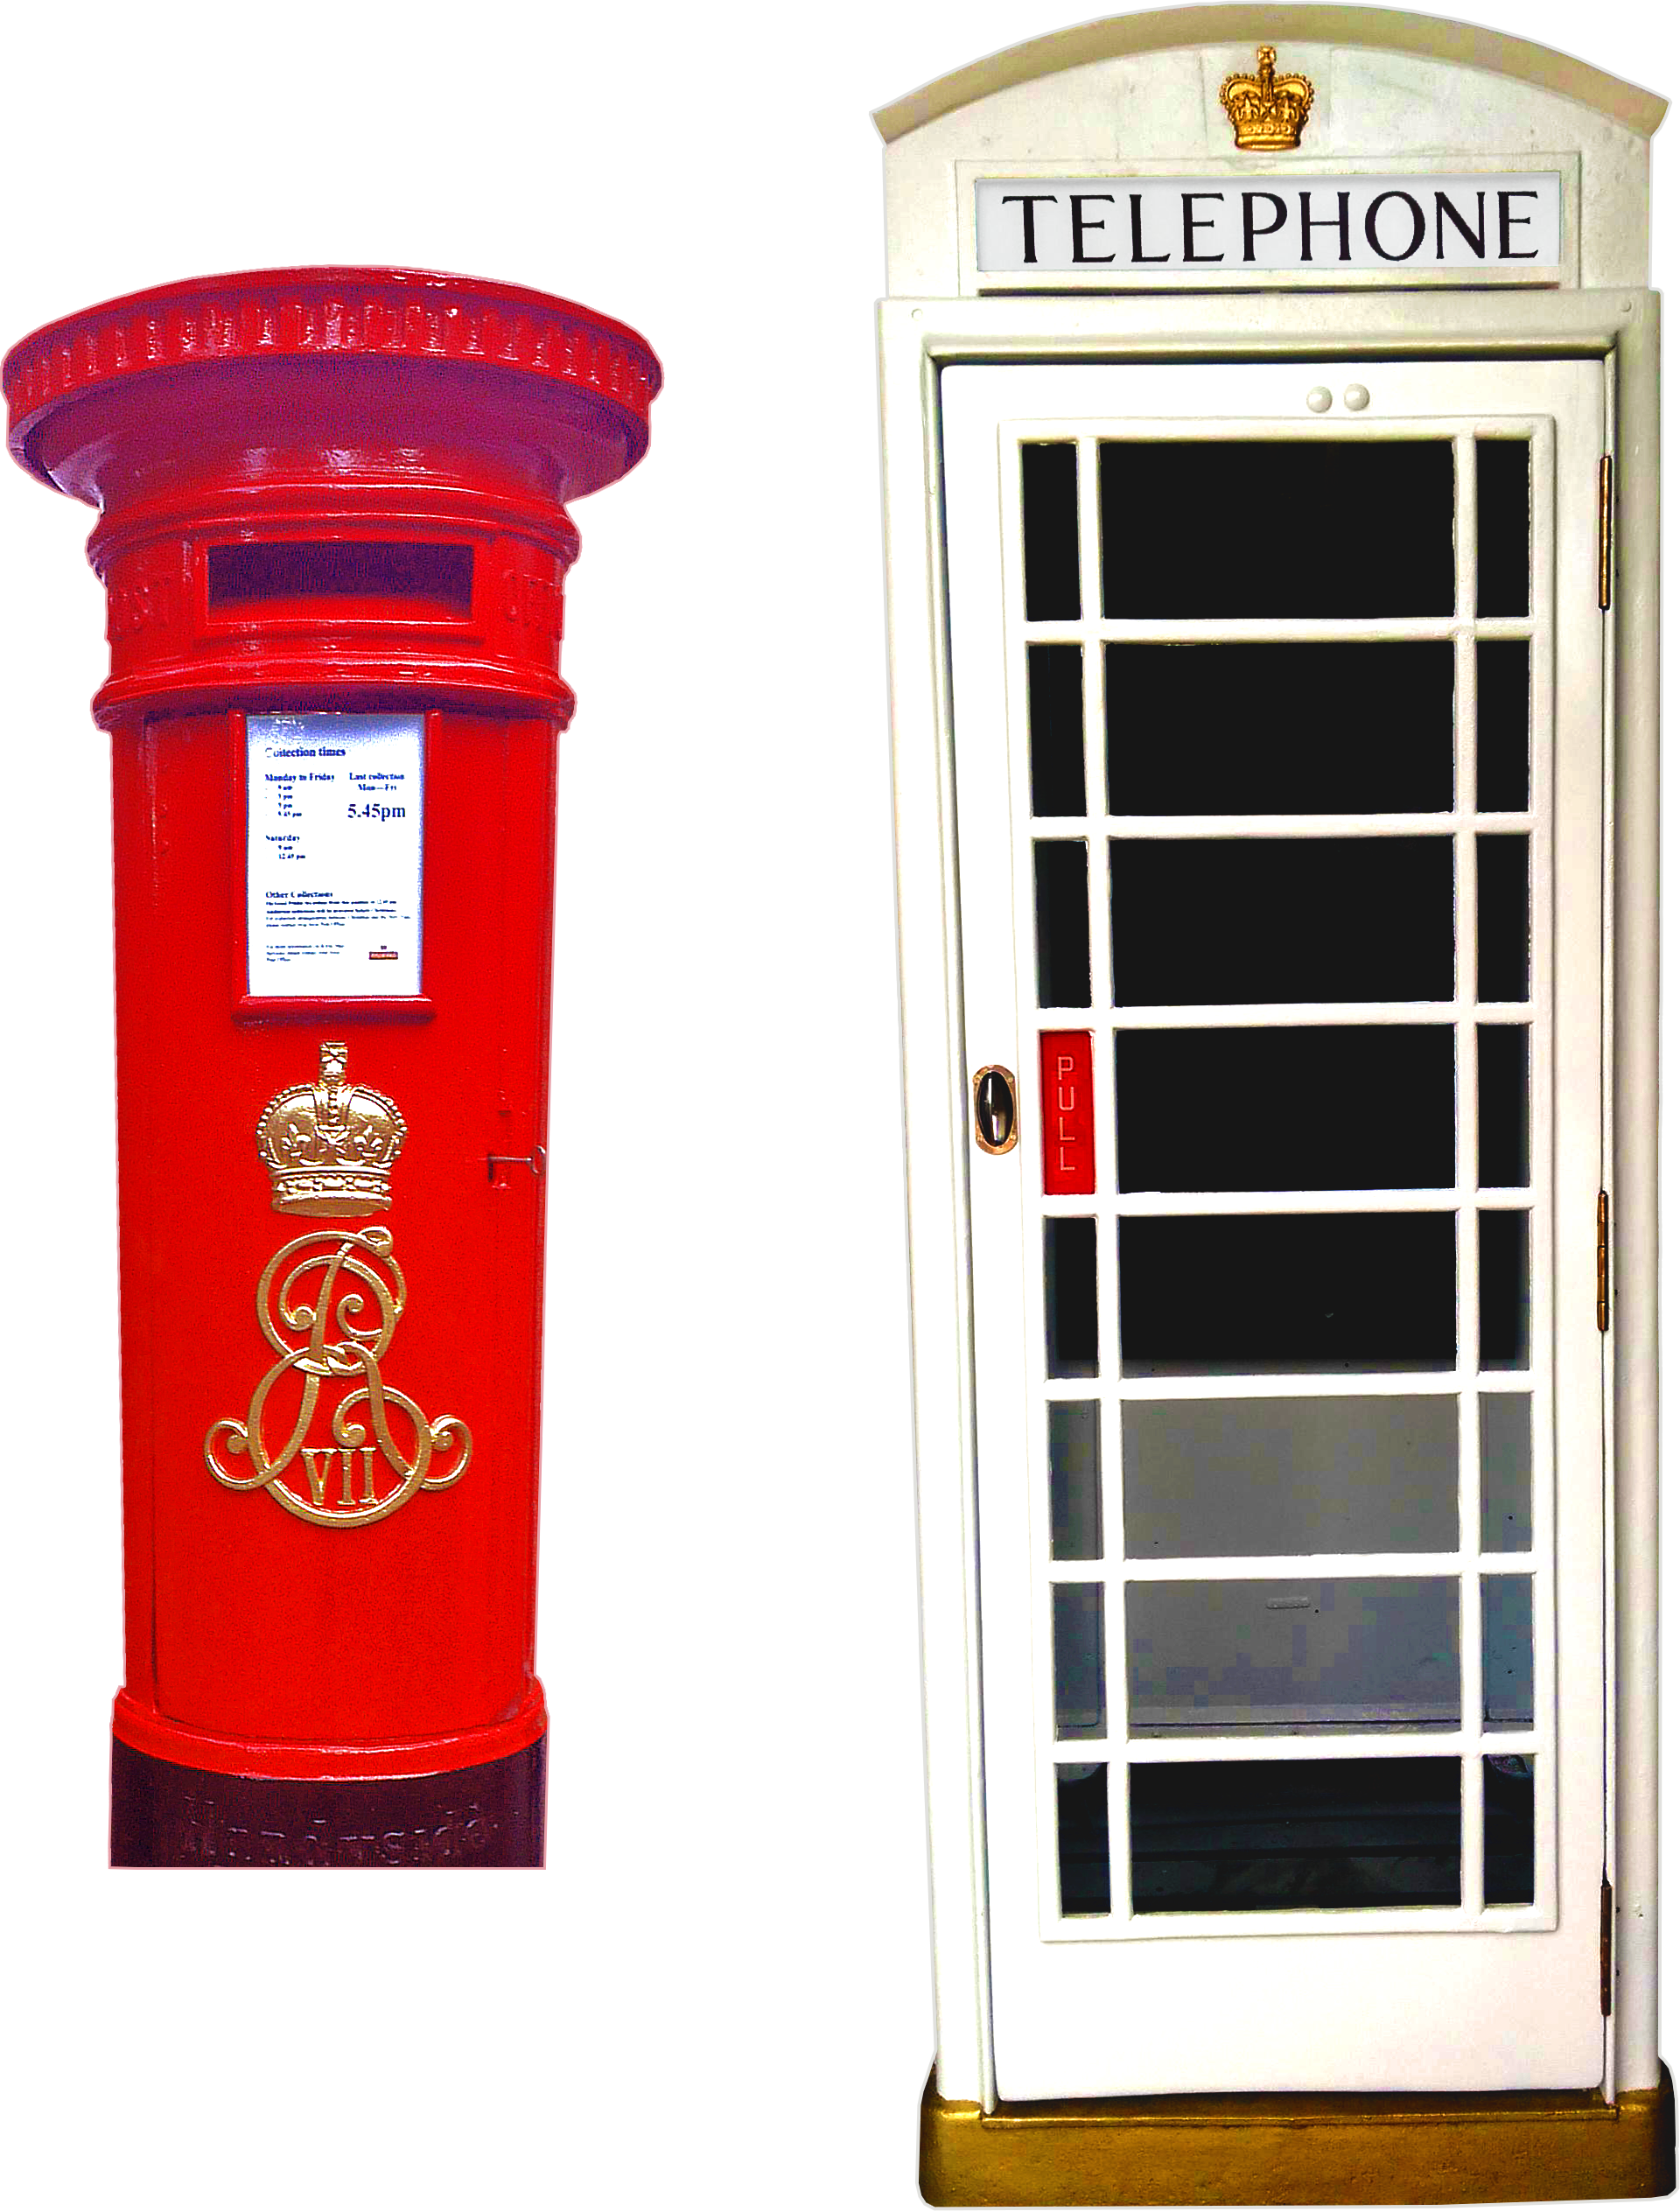 British bits restorers and. Telephone clipart red telephone